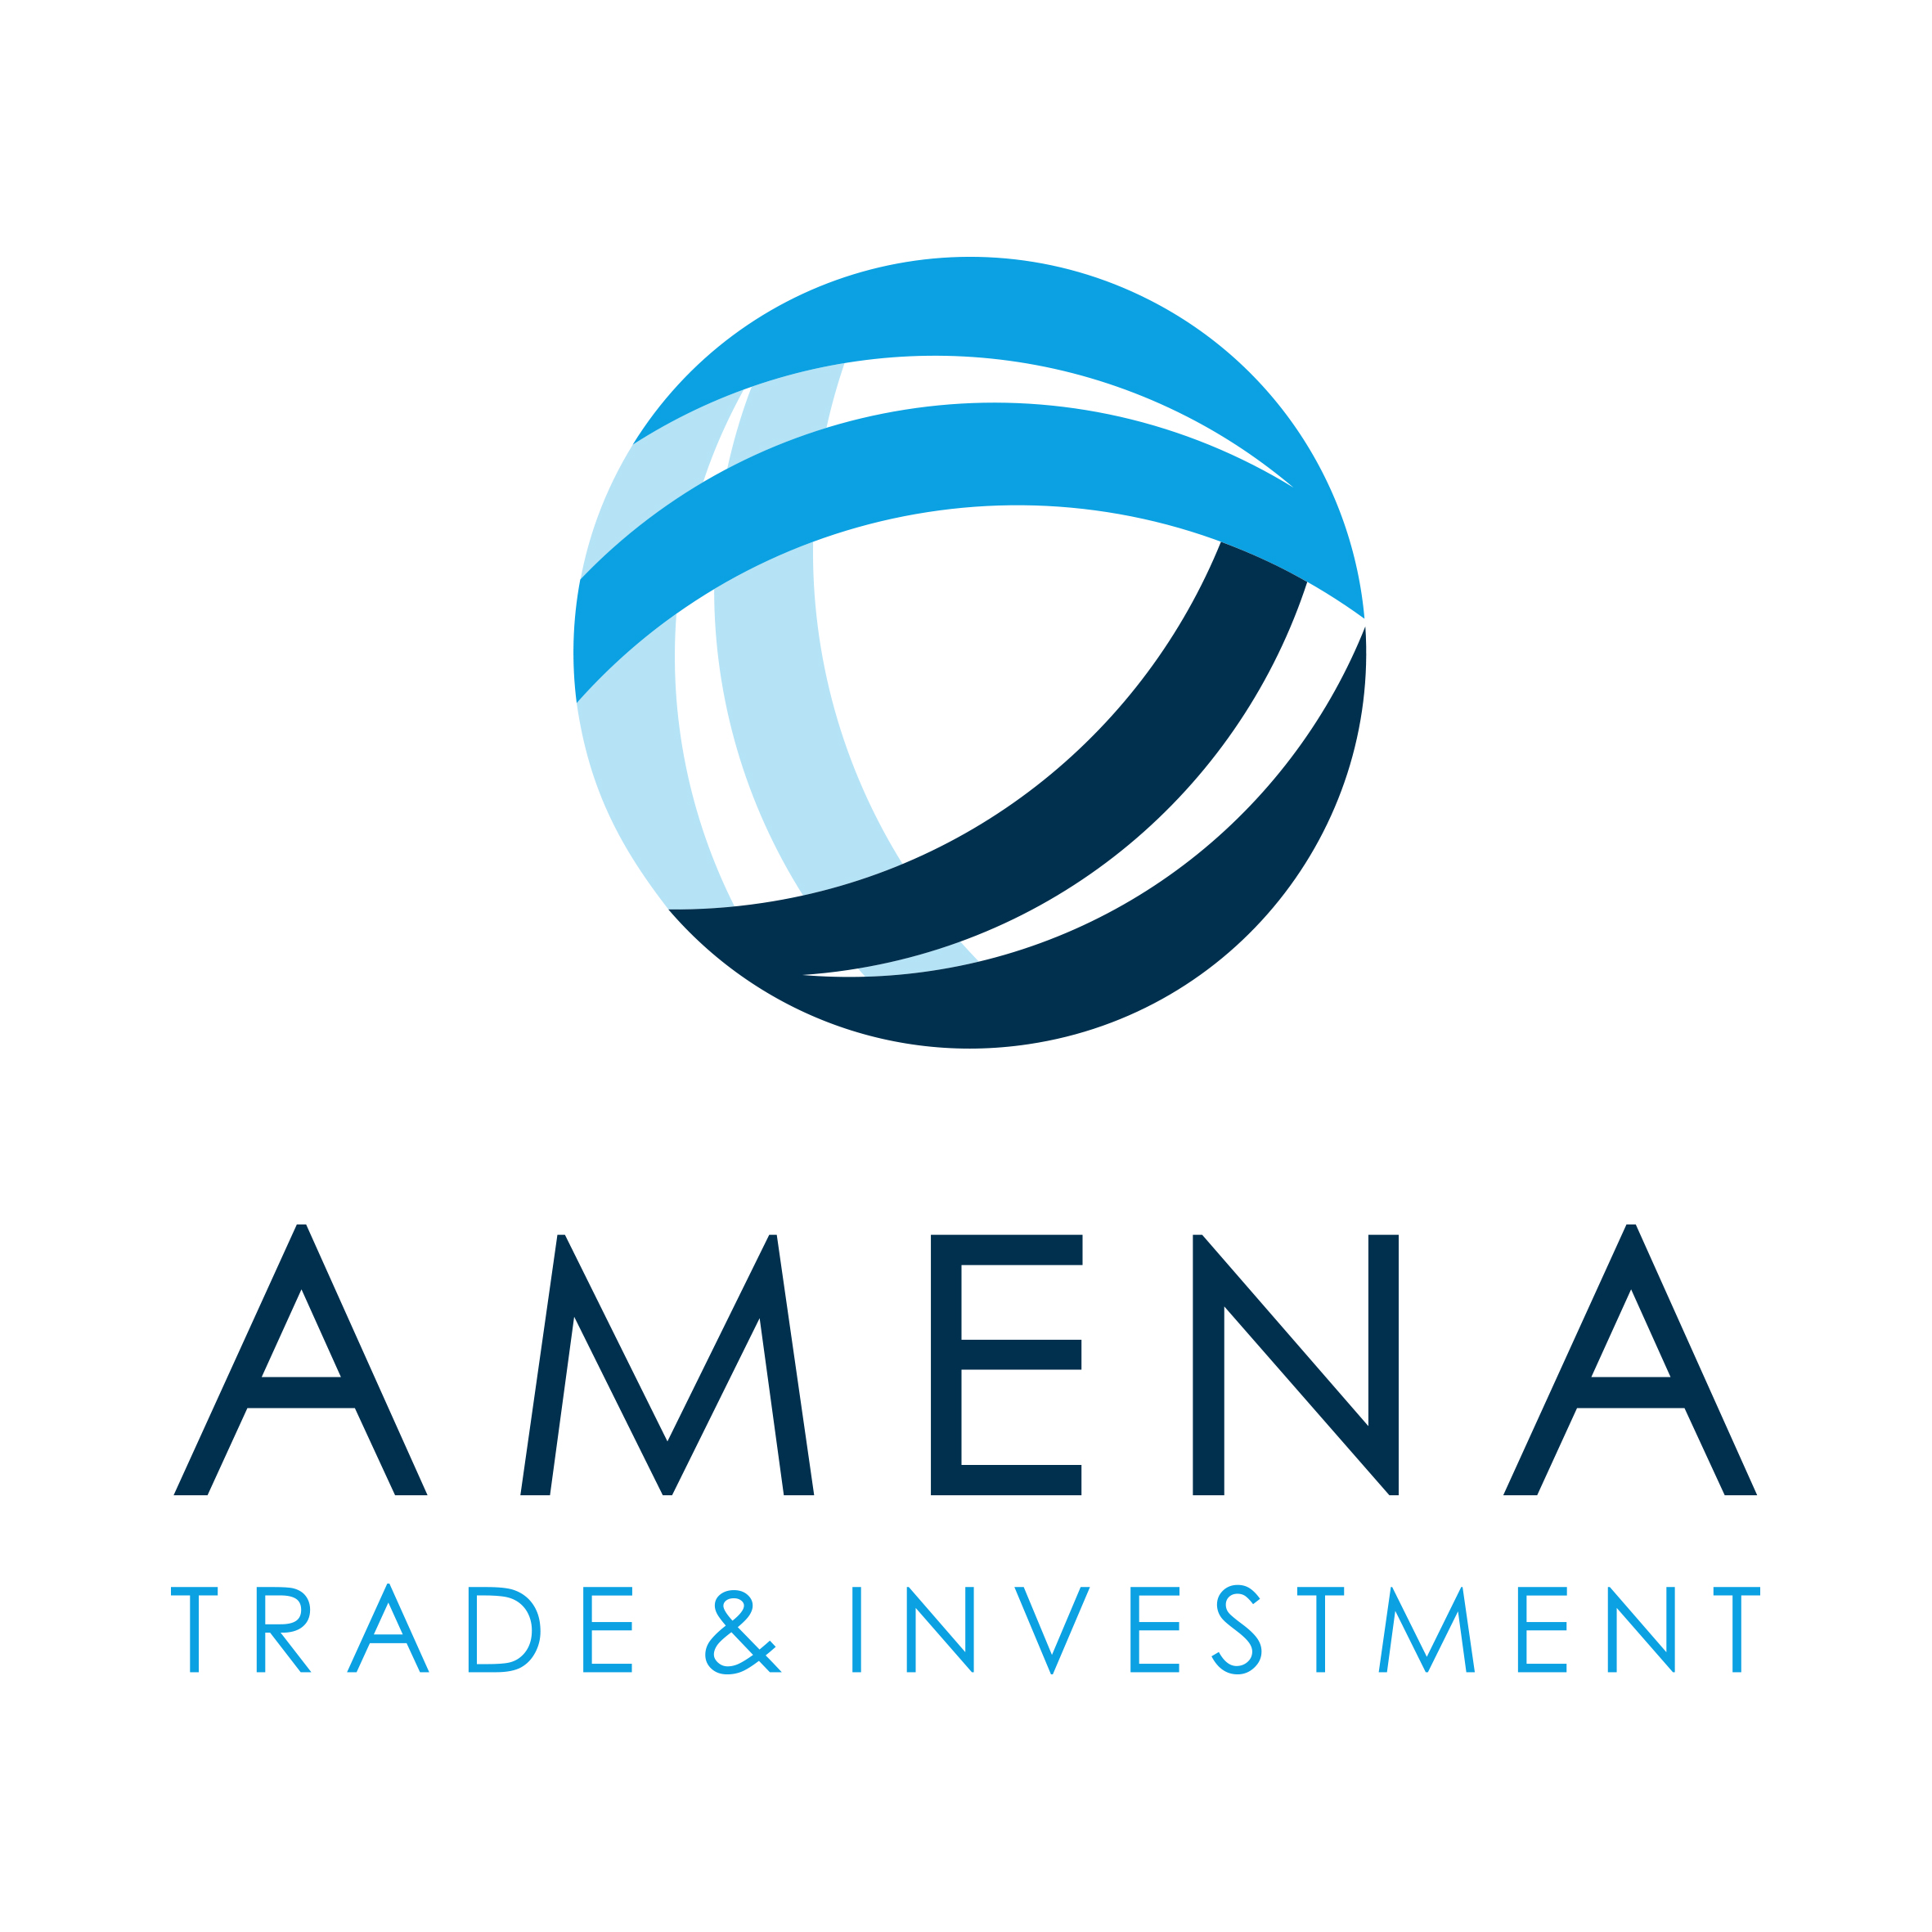 AMENA Trade & Investment  Logo